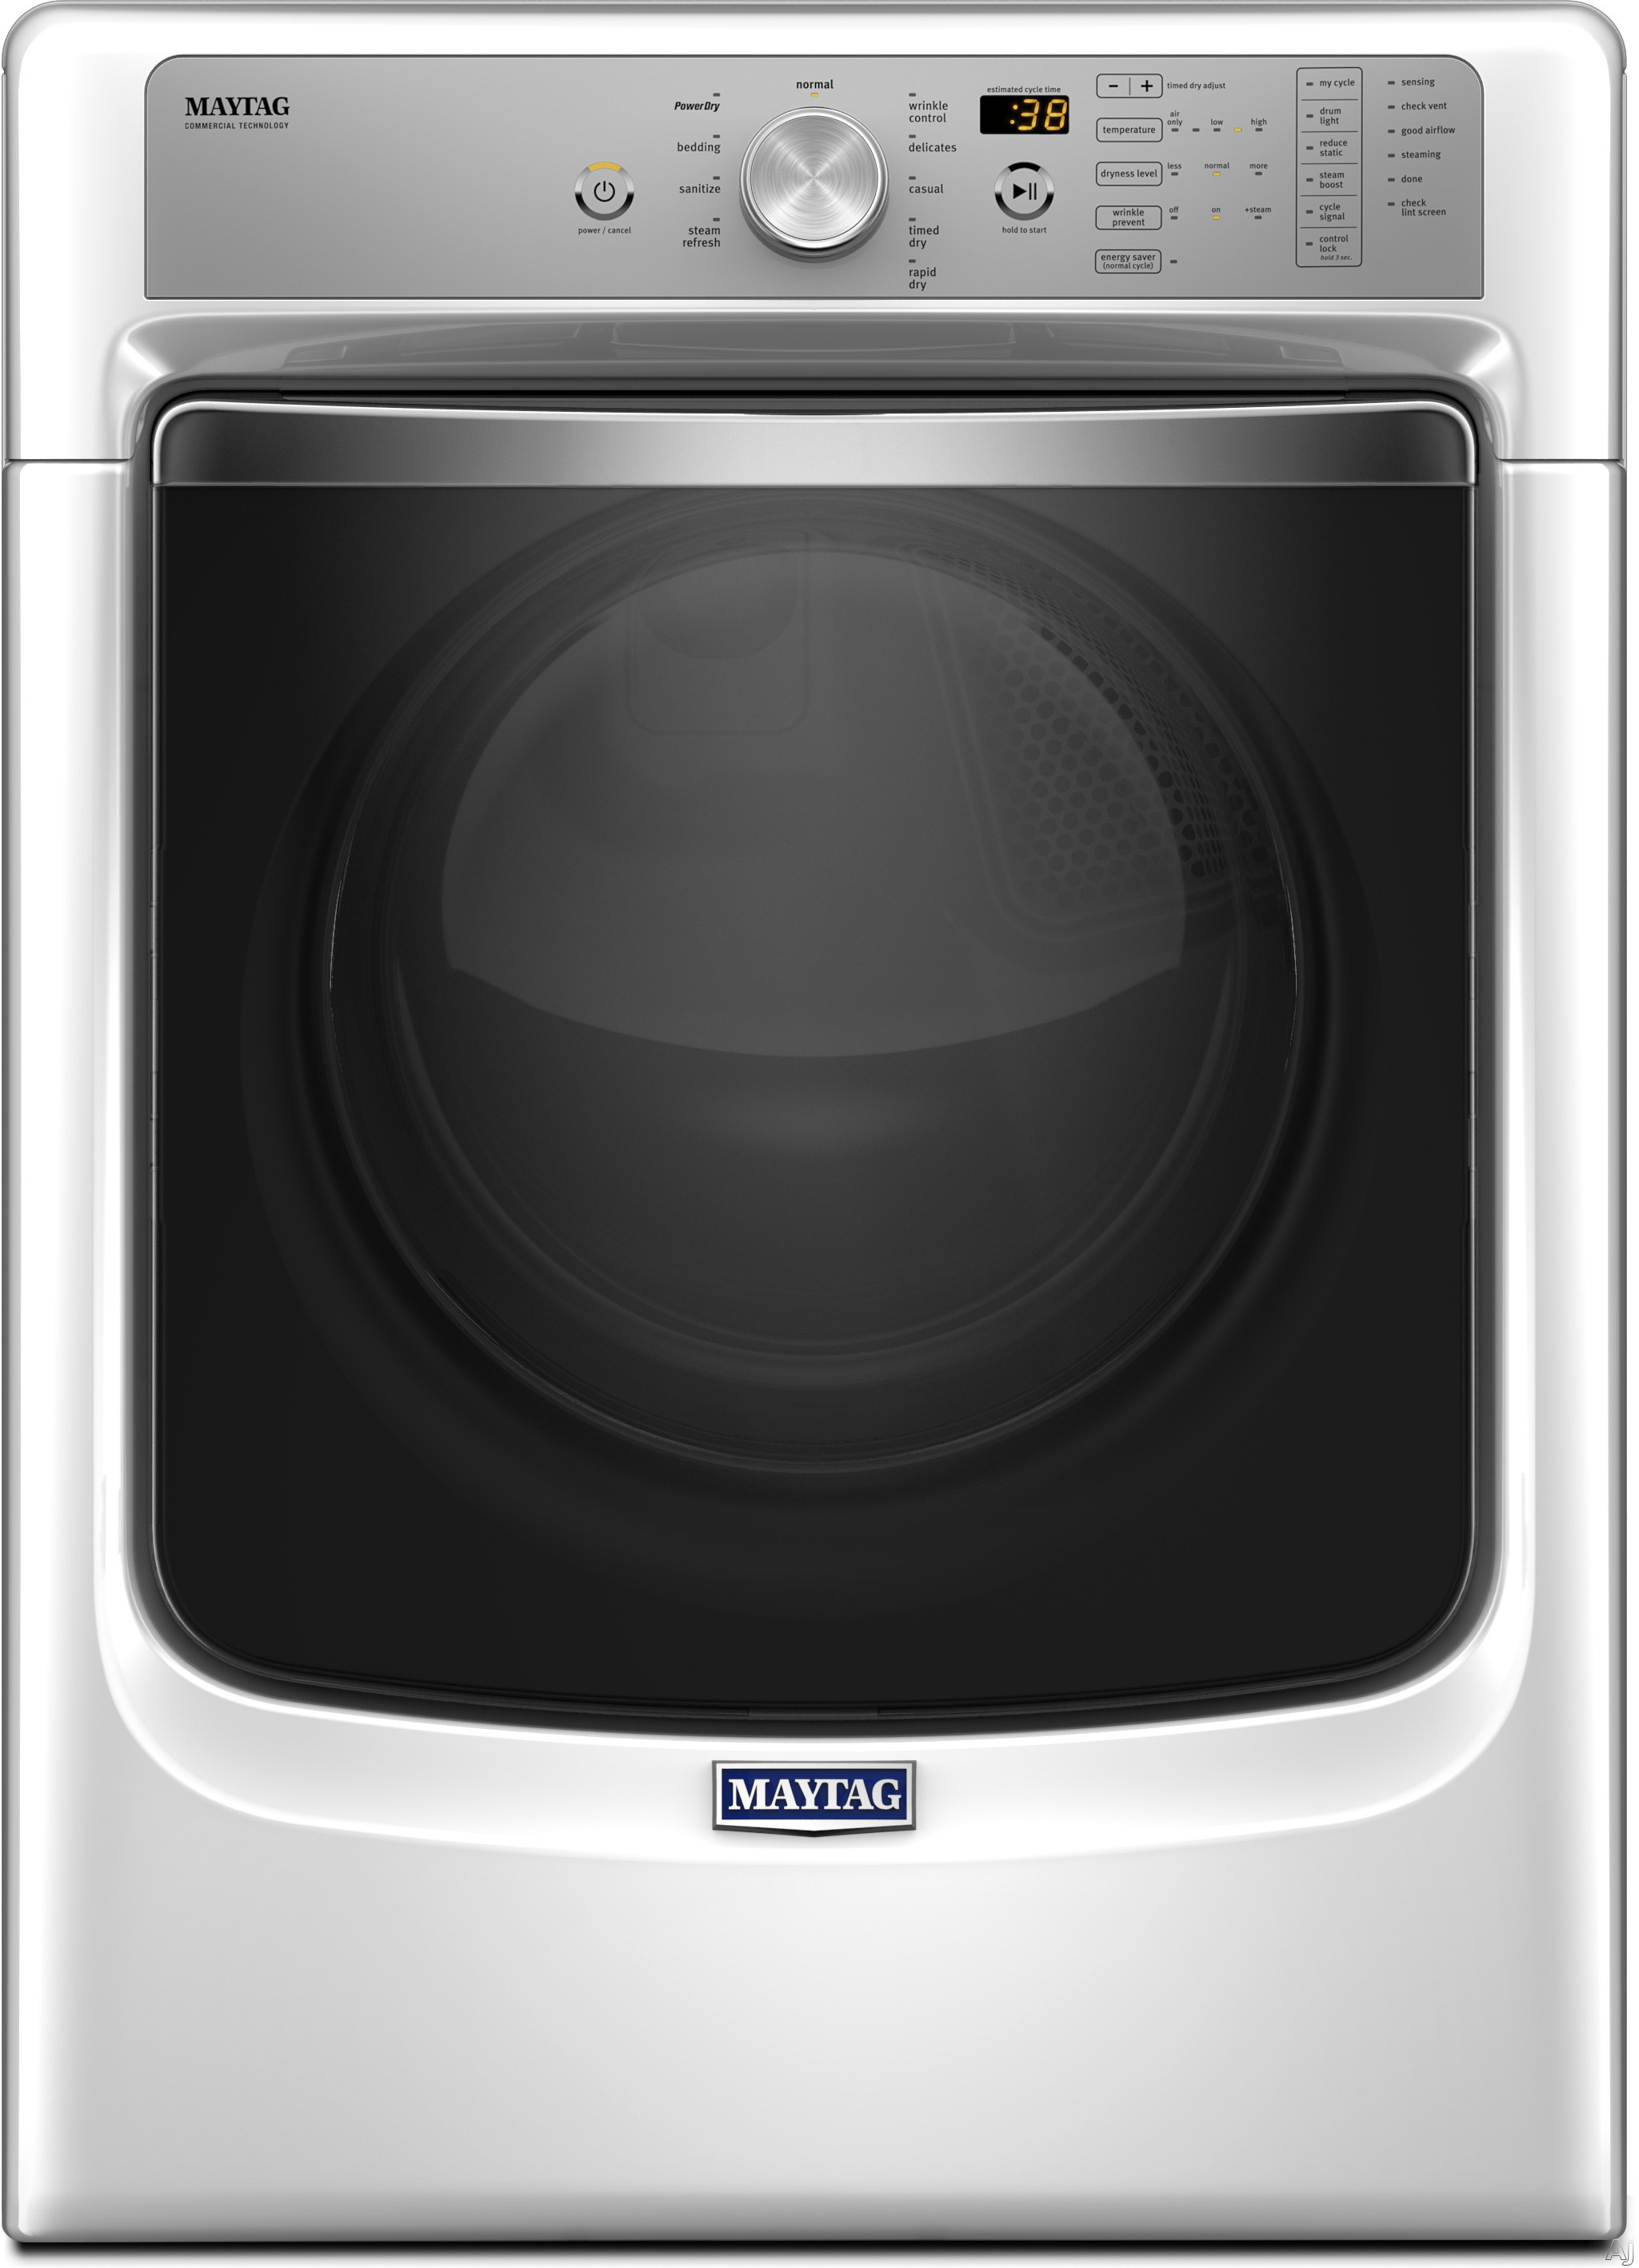 Maytag Laundry,Maytag Dryers,Maytag Gas Dryers